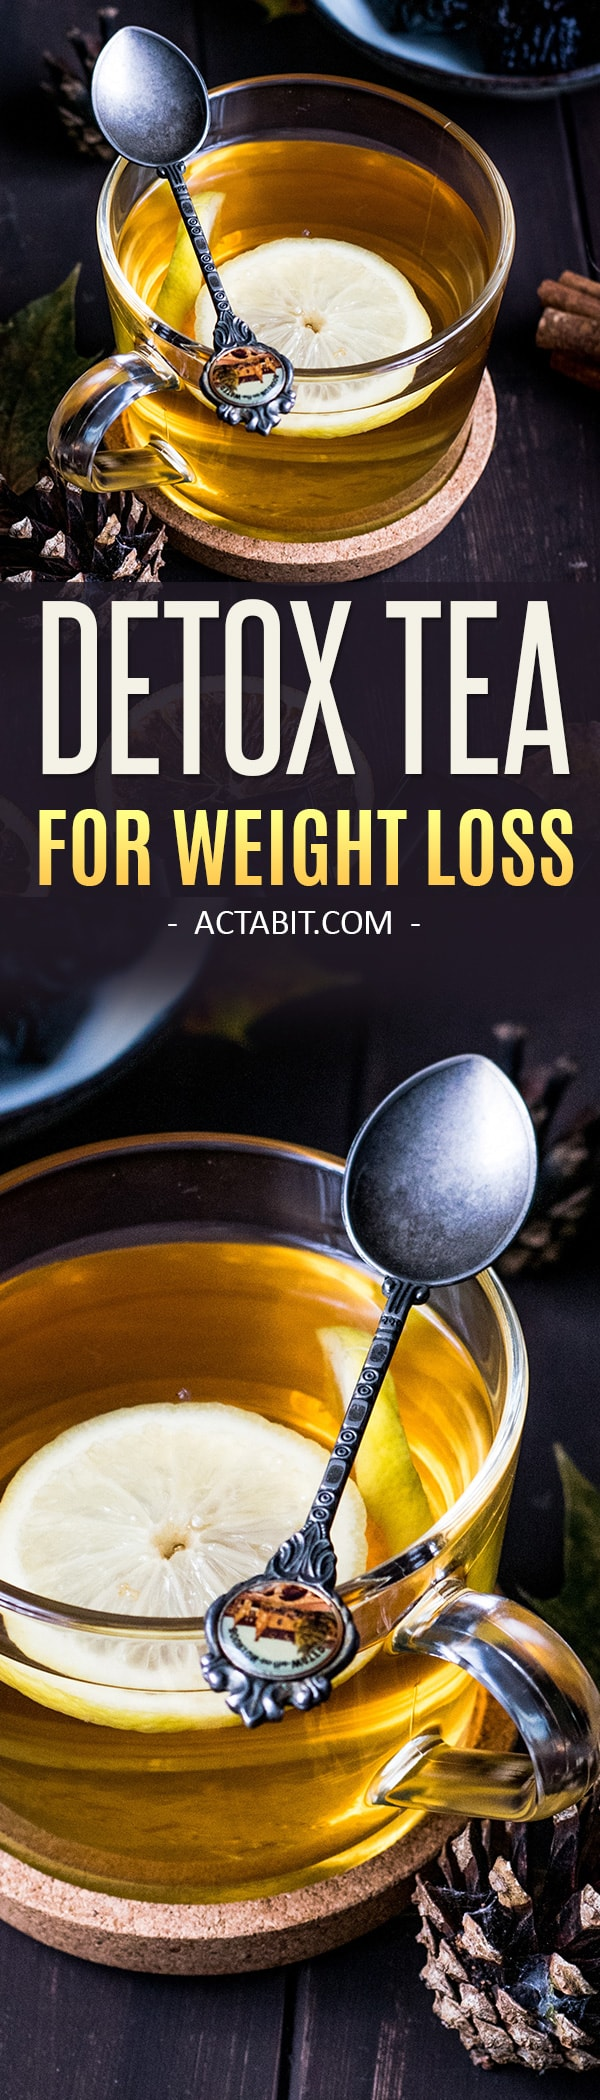 Detox Tea Recipes for Weight Loss. Get the quick and easy slimming tea recipe and make your healthy drink at home.